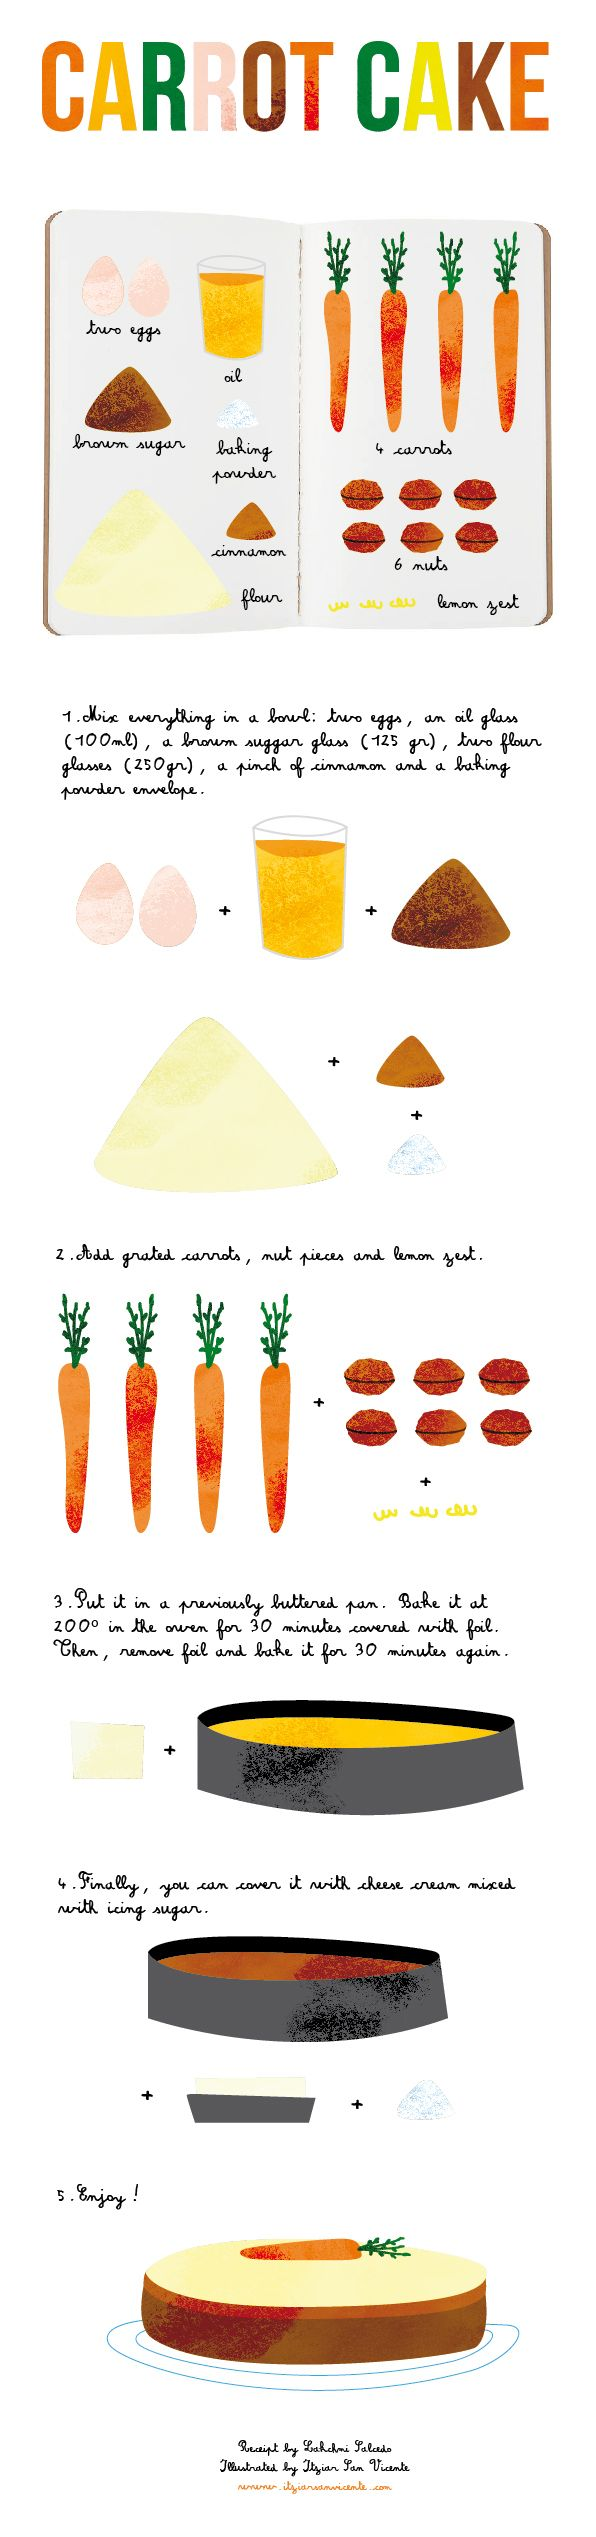 Carrot Cake by Itziar San Vicente #receipt #carrot #cake #illustration